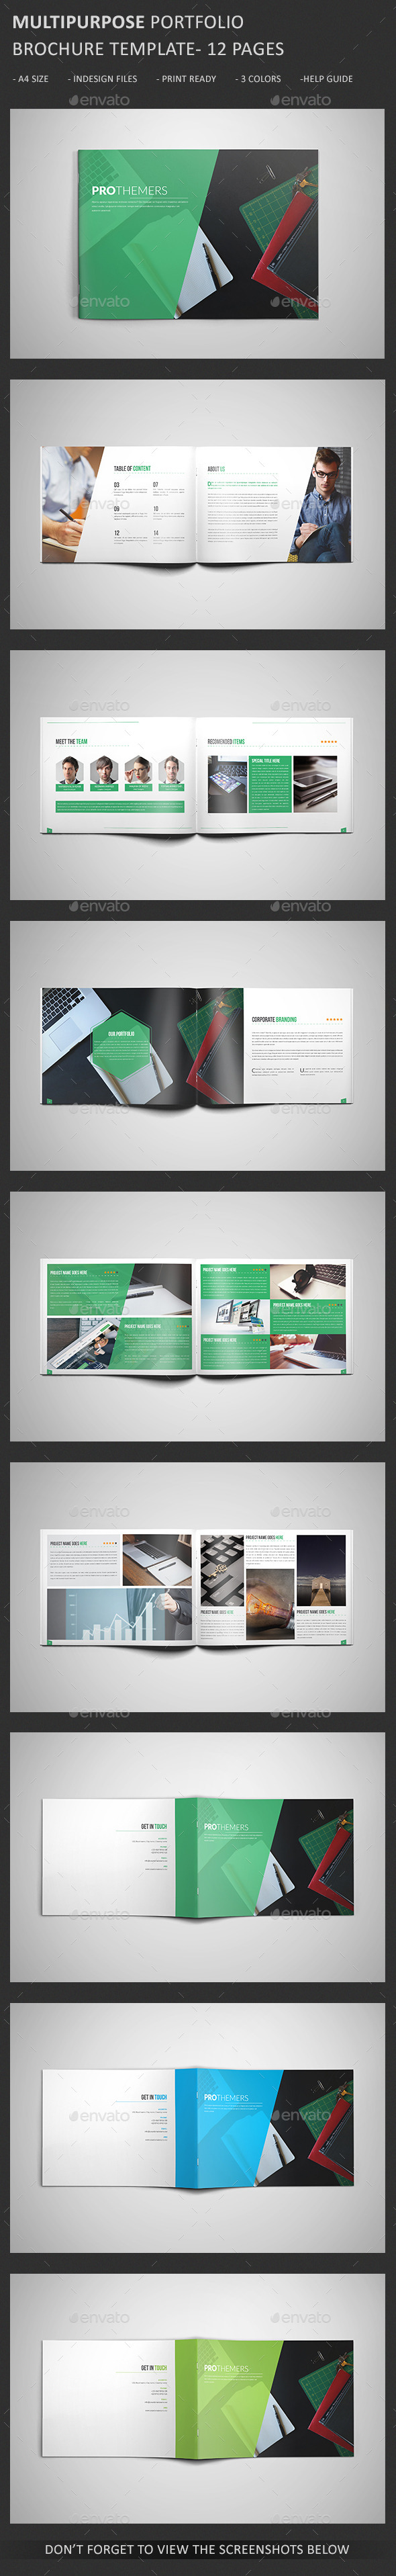 GraphicRiver Portfolio Brochure Template V2 11152993